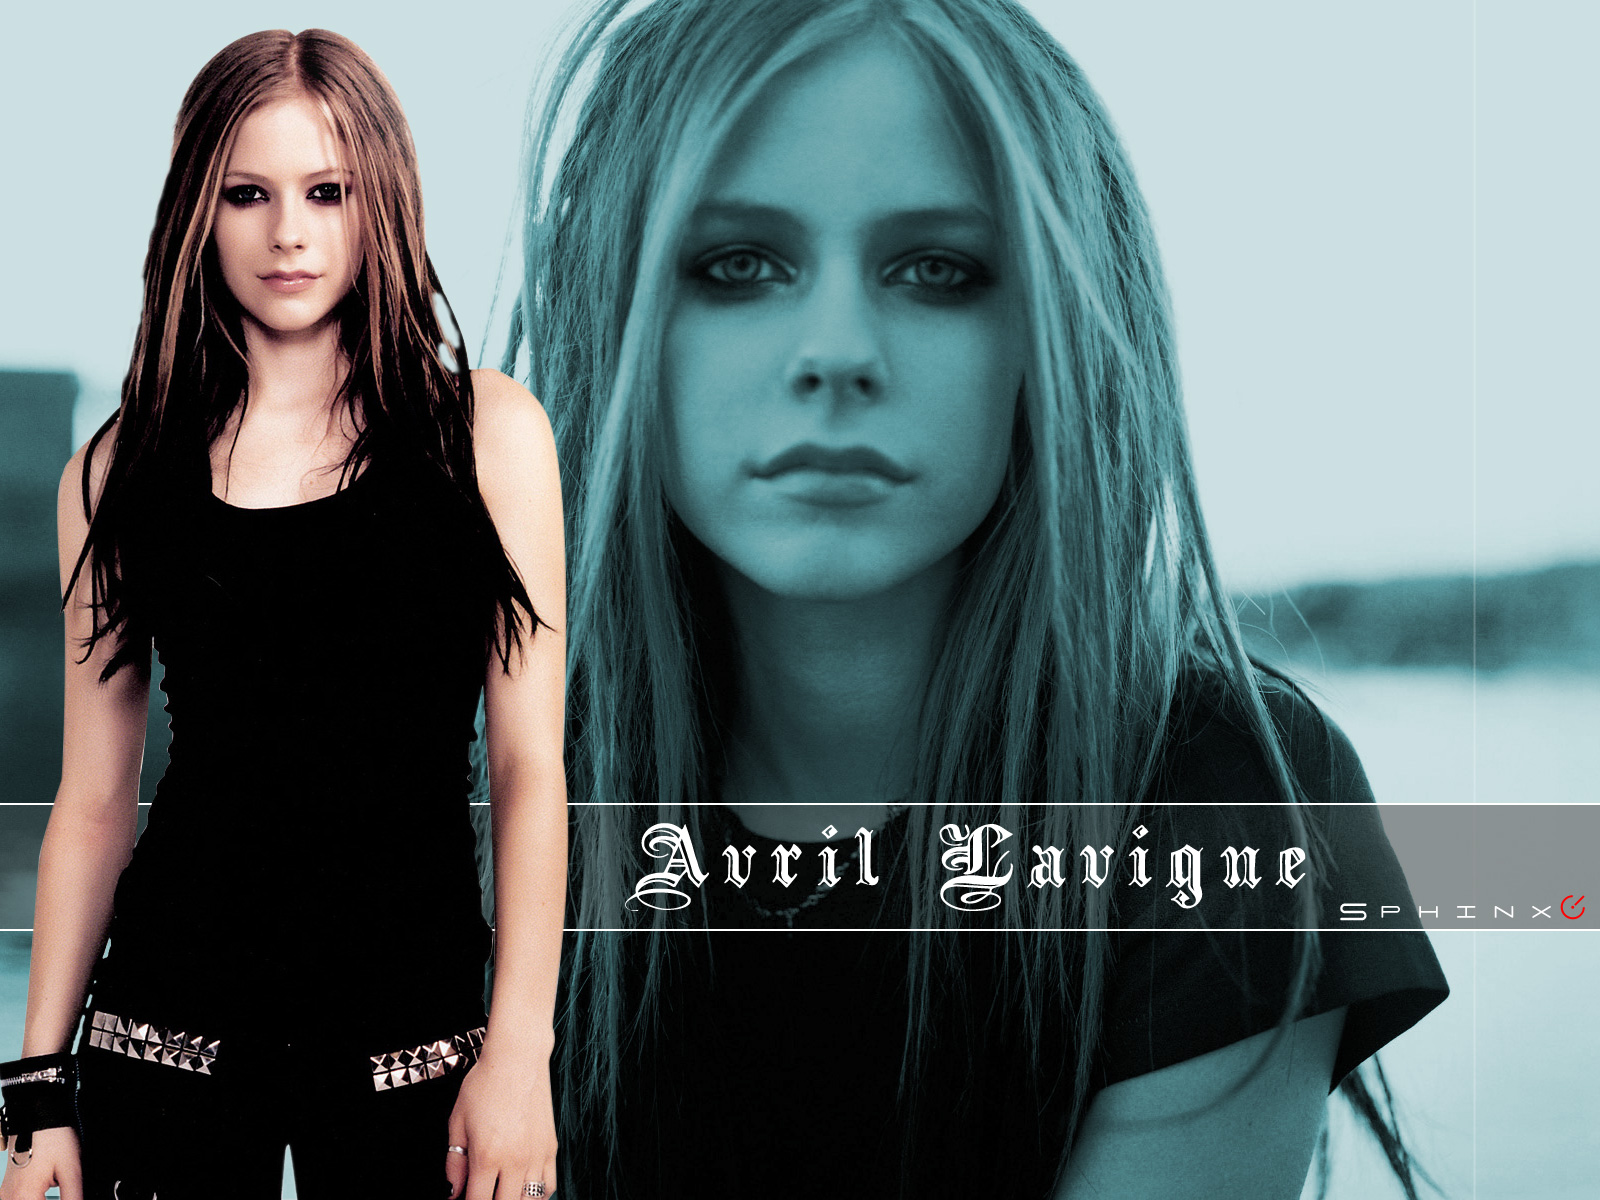 Avril Lavigne - Images Gallery